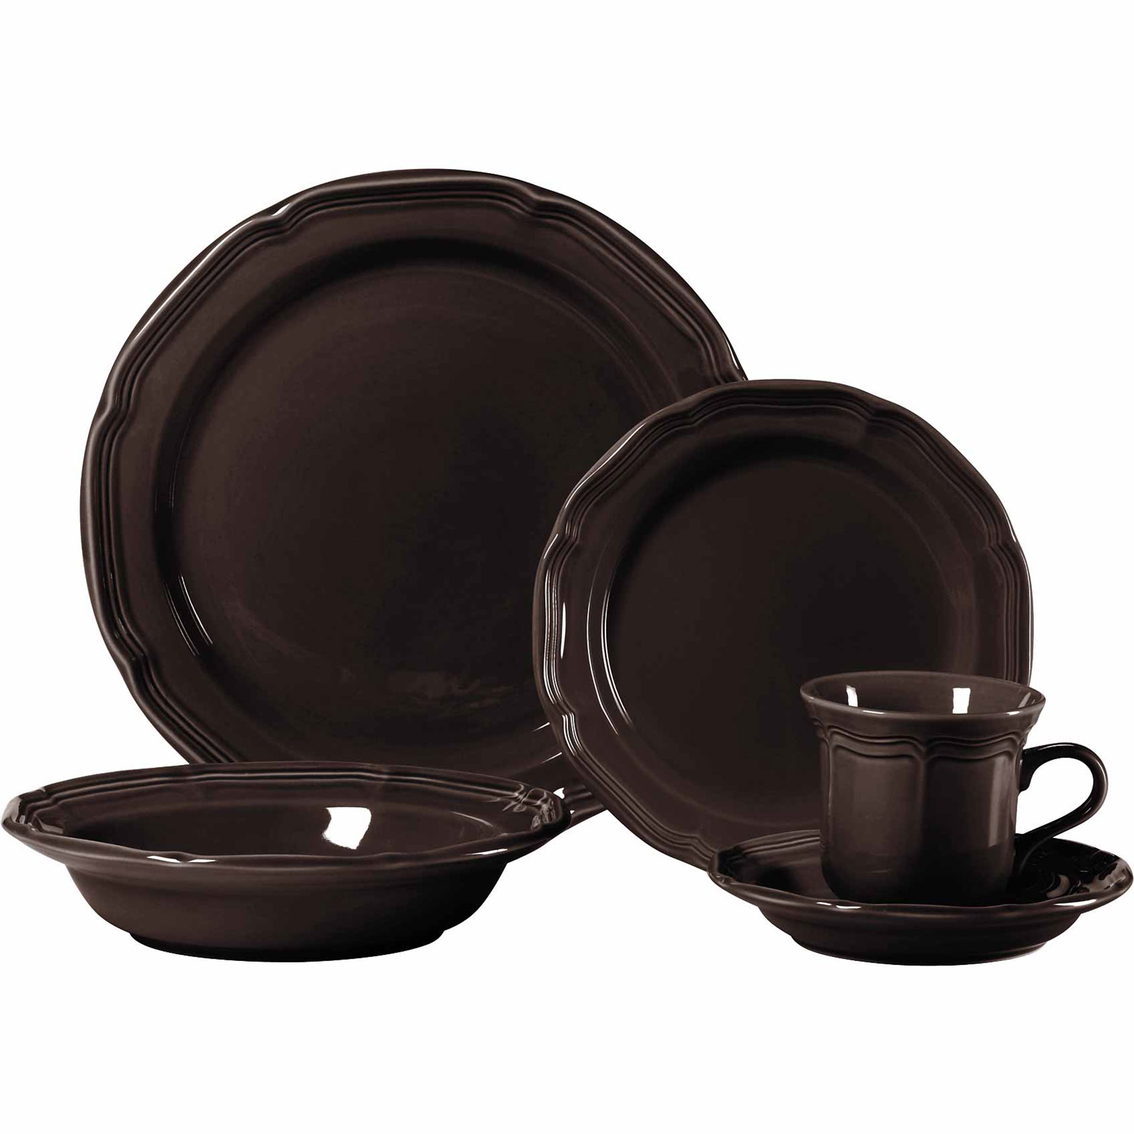 Mikasa French Countryside 5 Pc. Place Setting | Dinnerware Sets ...